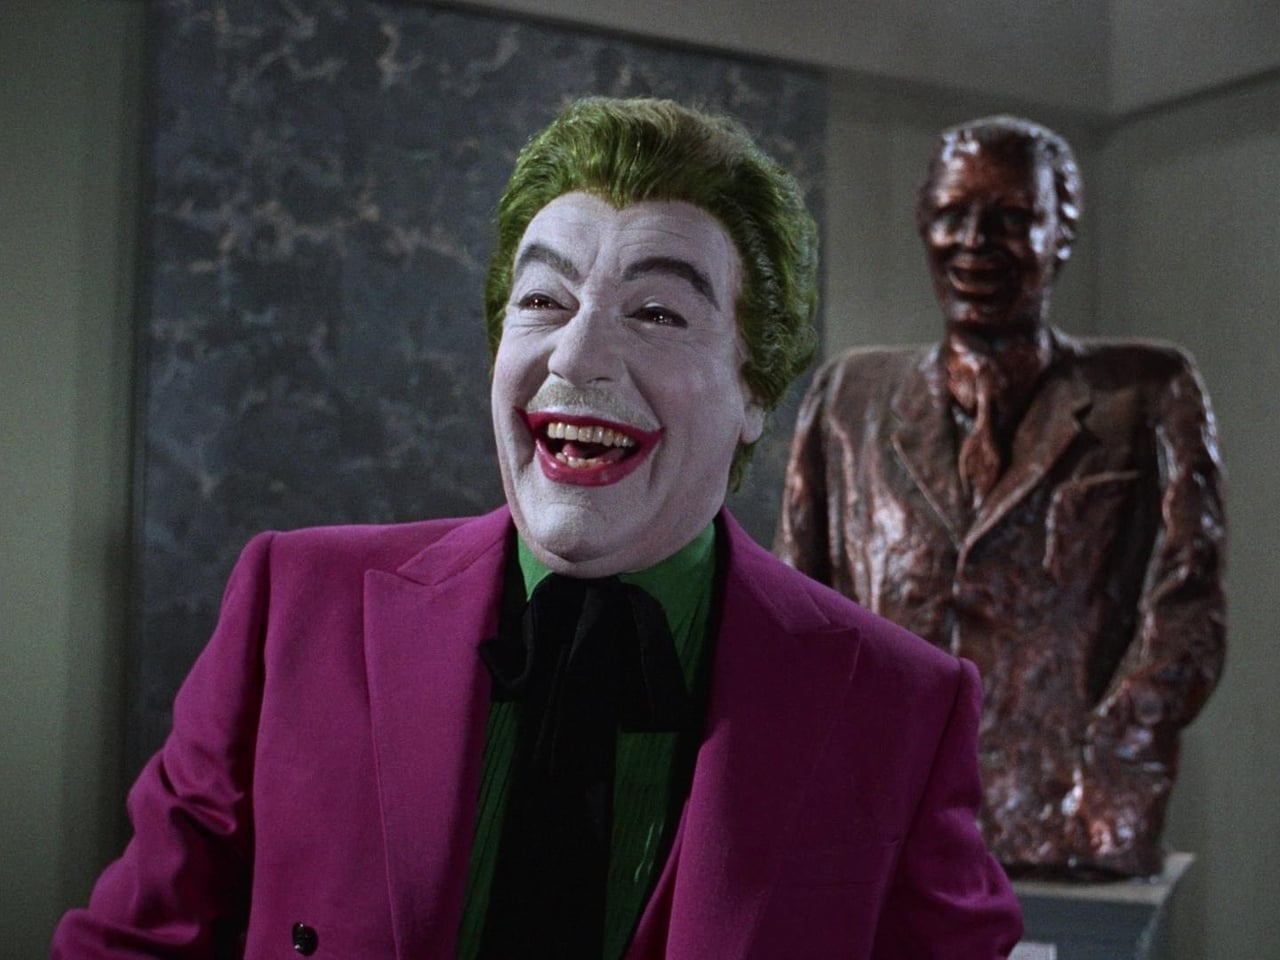 Batman - Season 1 - The Joker Is Wild